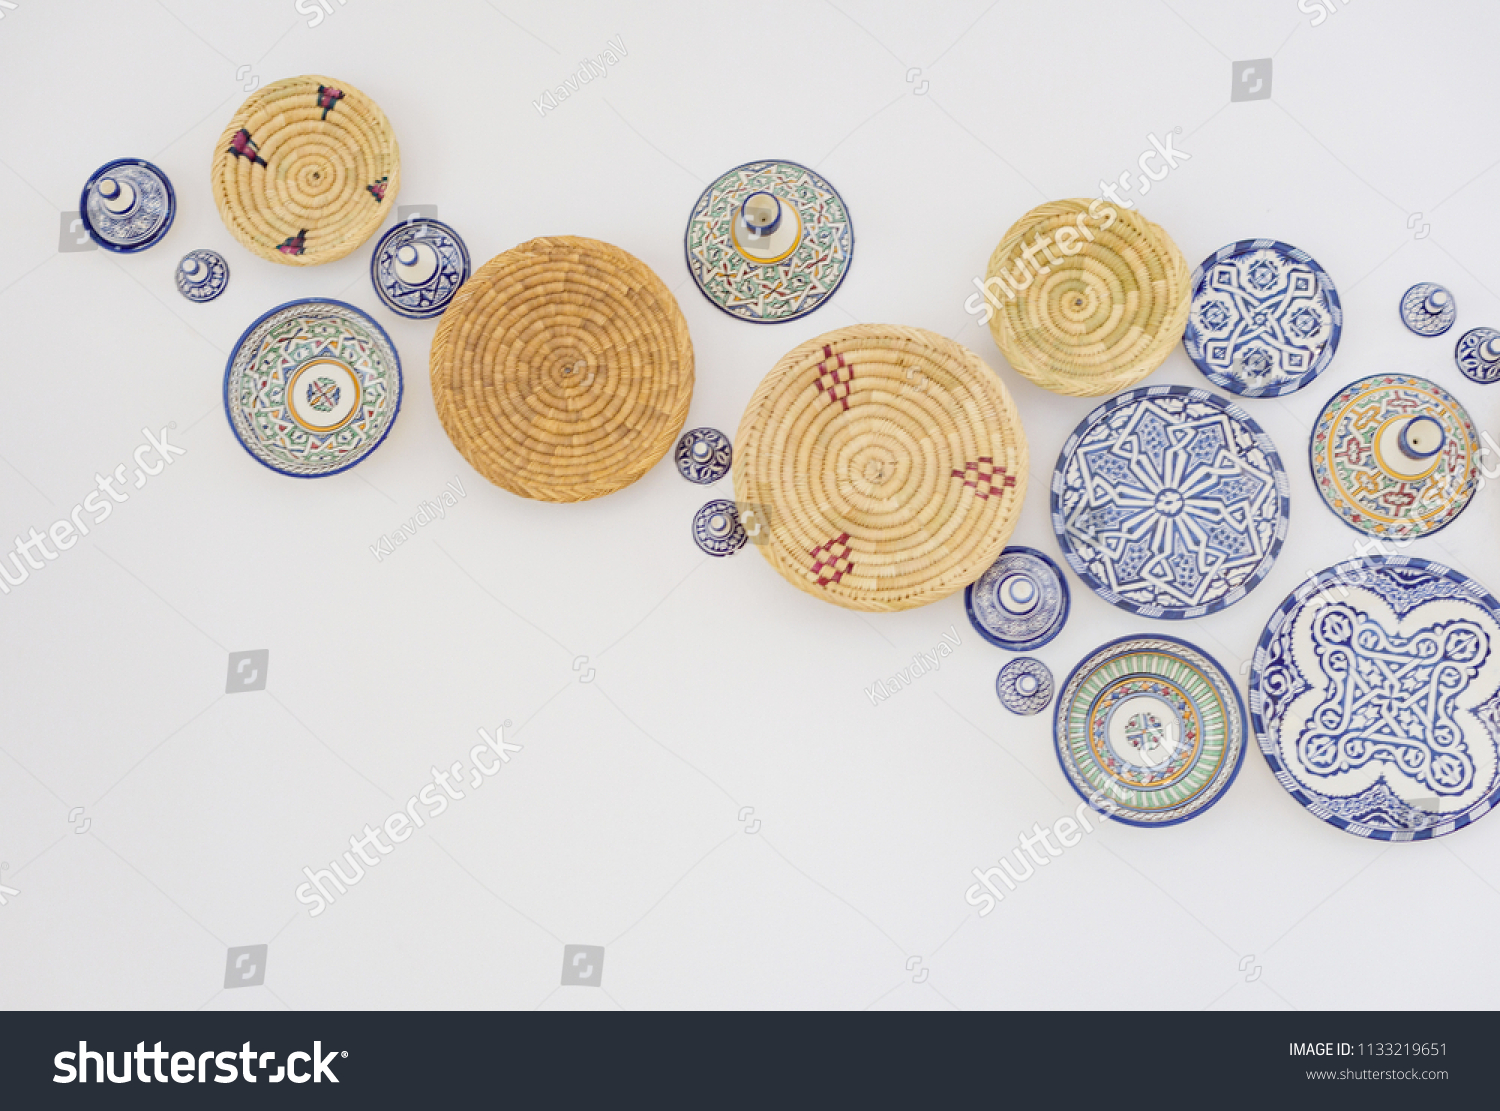 Traditional Moroccan Plates Wall Decoration Stock Photo Edit Now 1133219651